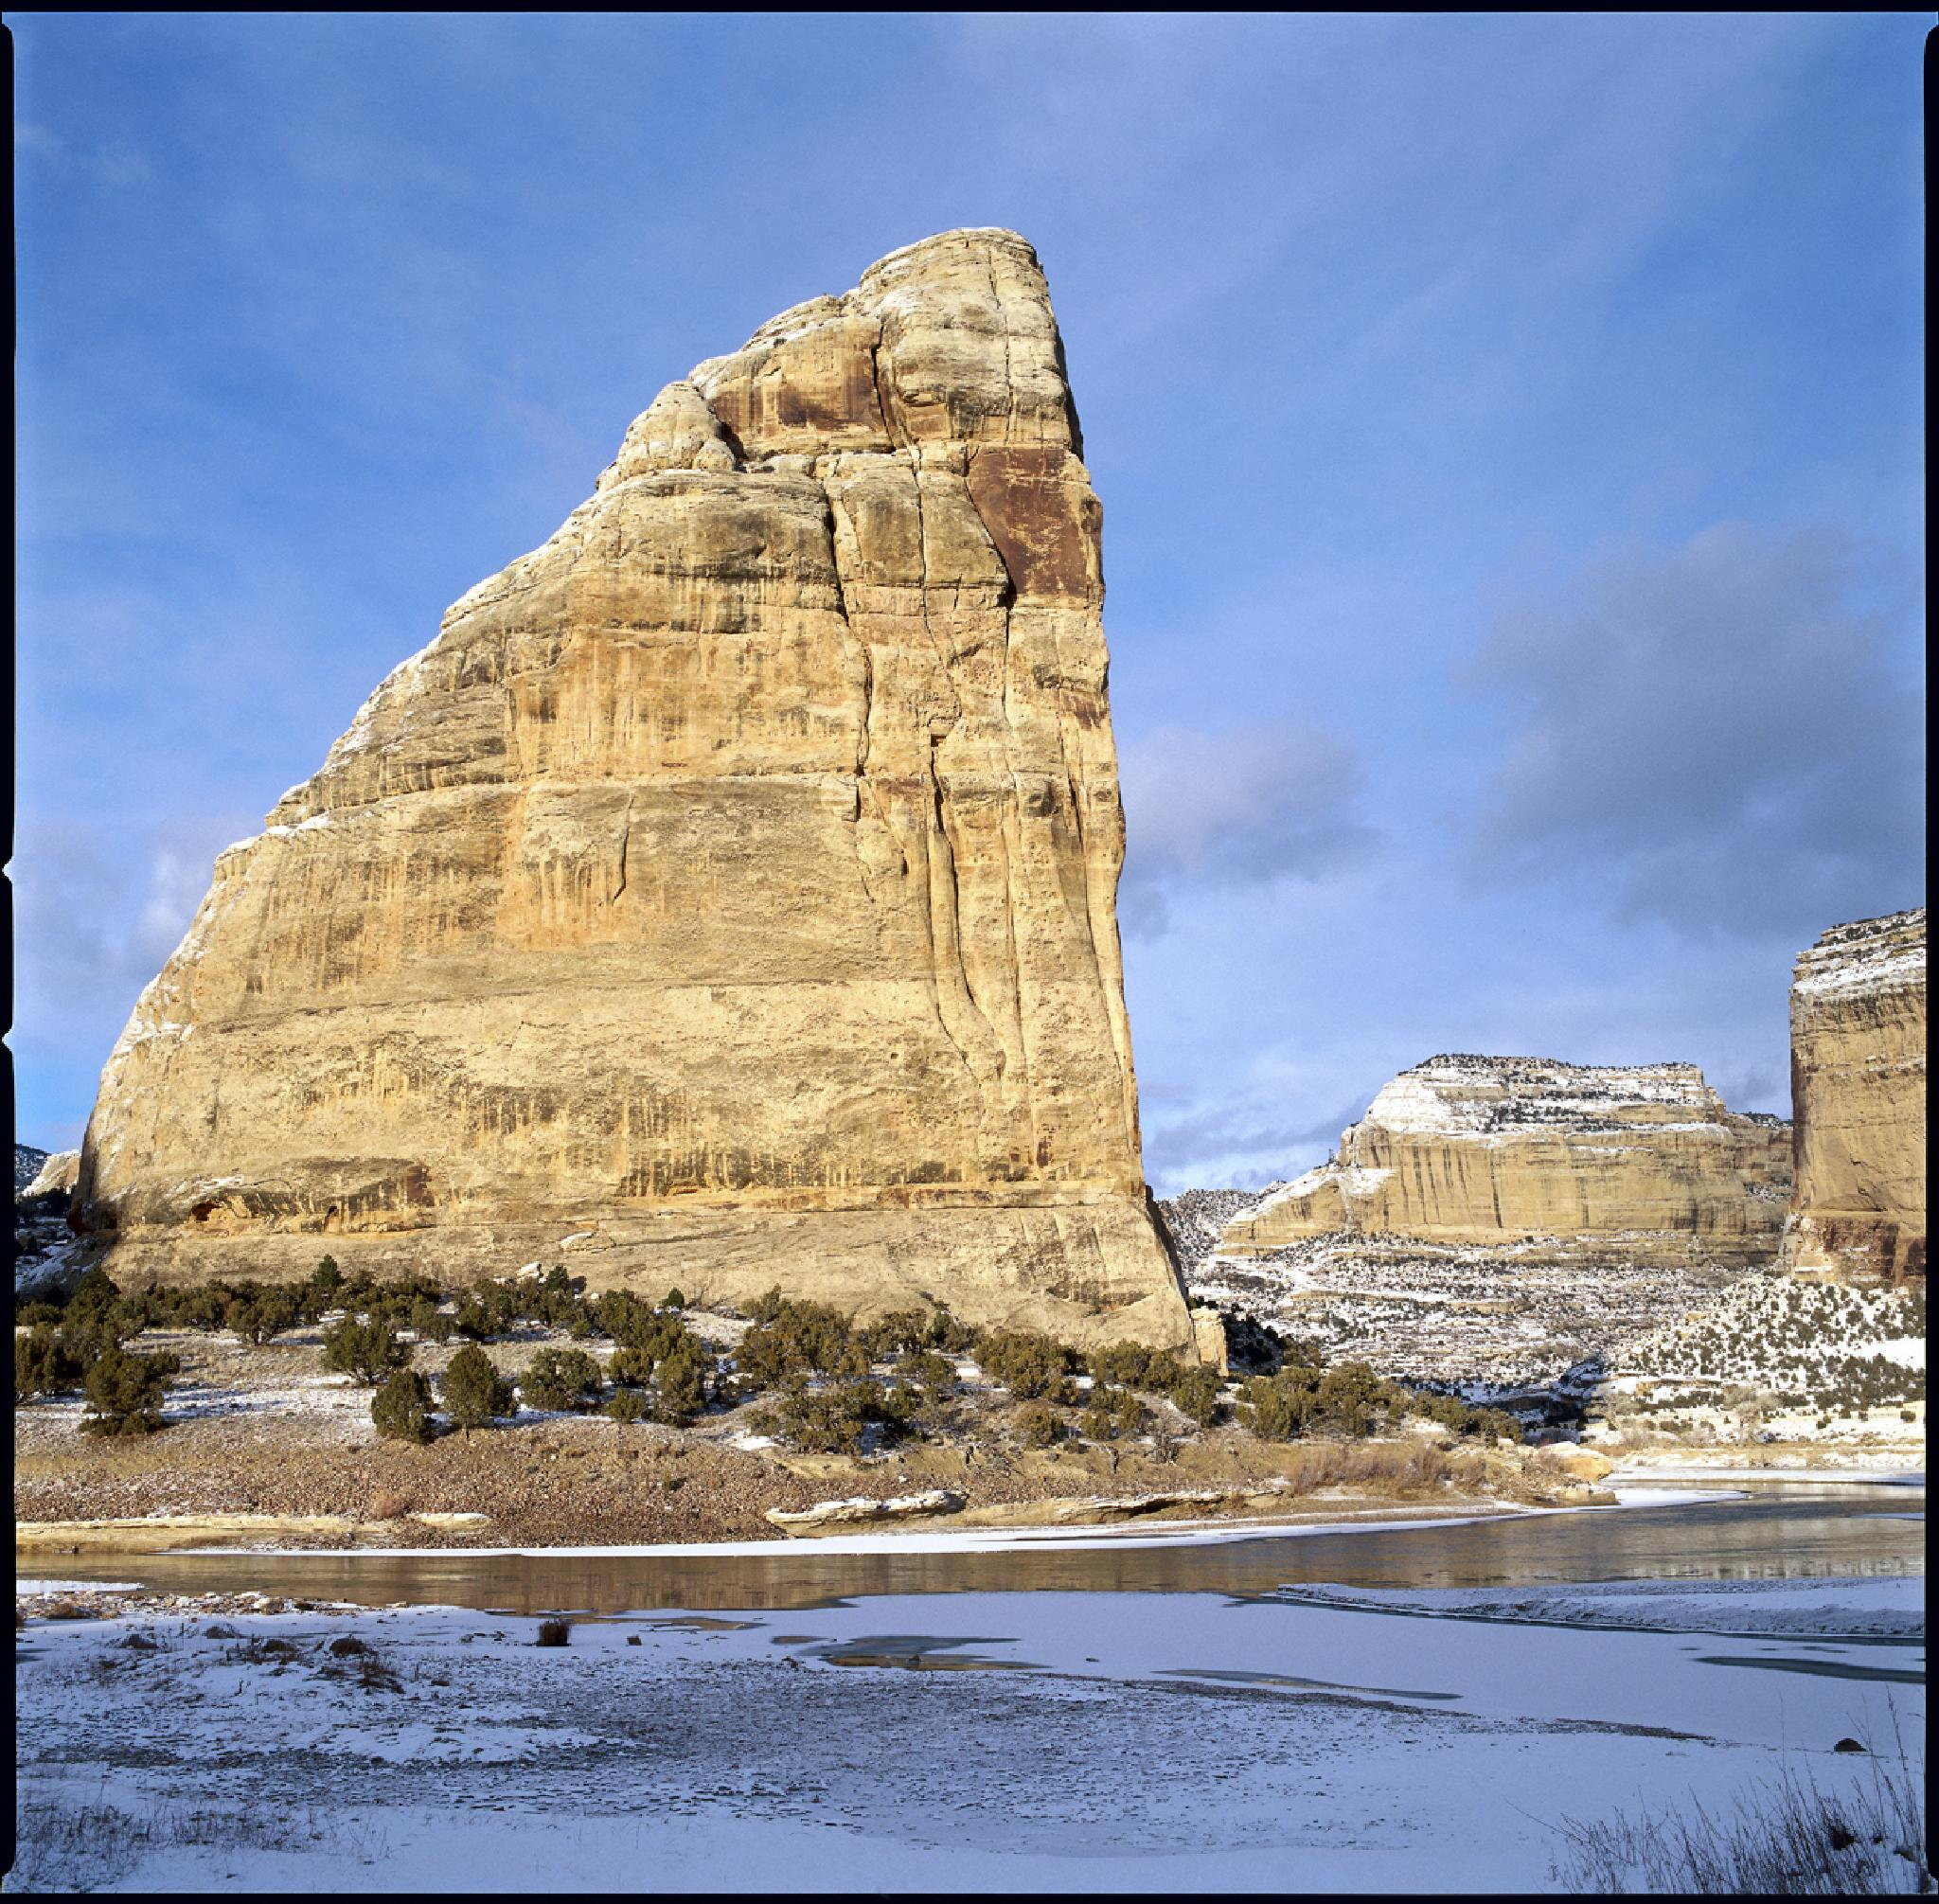 Steamboat Rock at Echo Park Dinosaur NP by Larry Lorusso